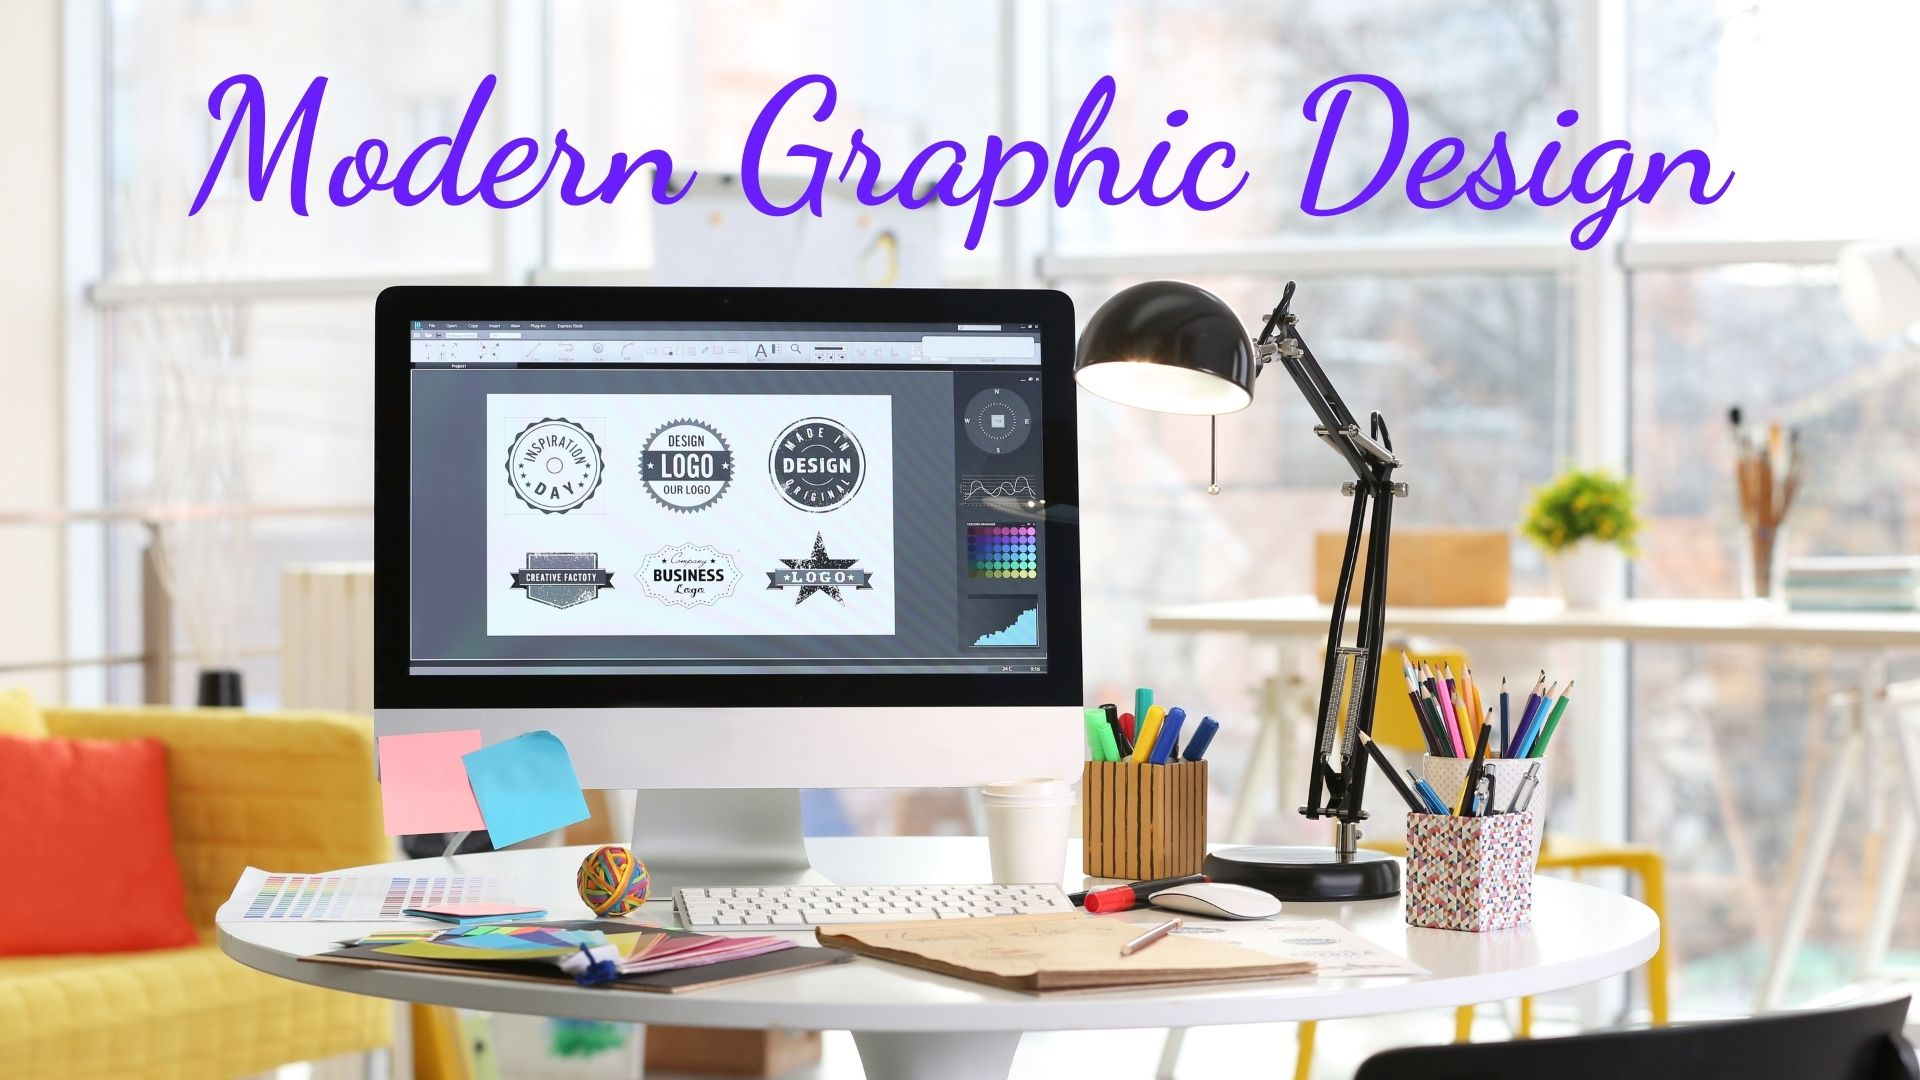 Modern Graphic Design - What is It and How Do You Use It